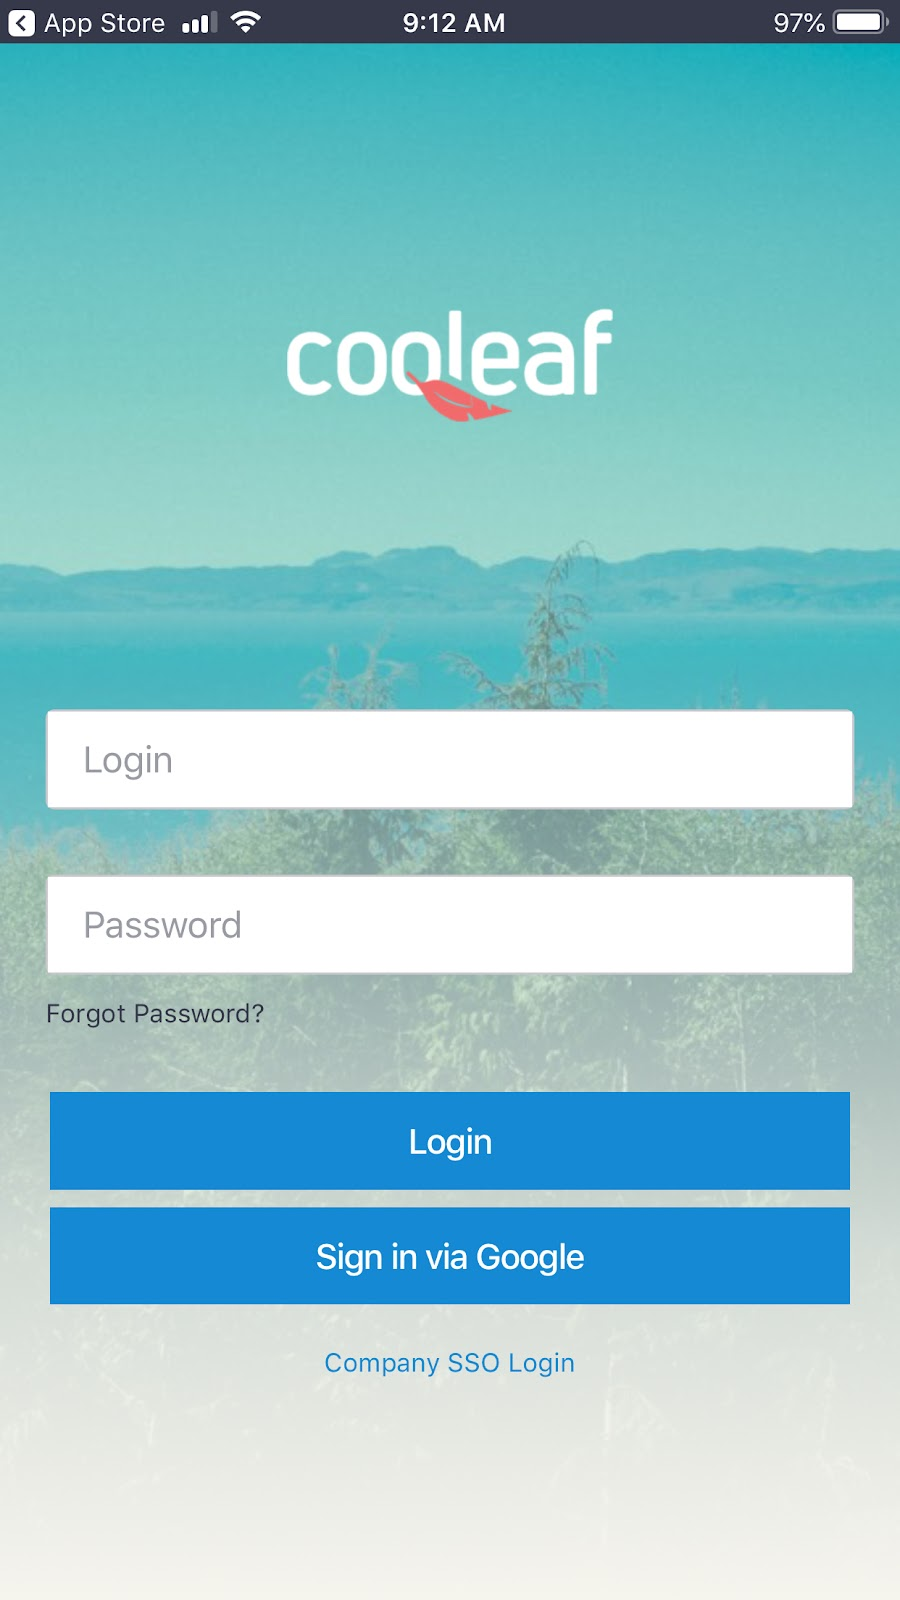 Cooleaf mobile app